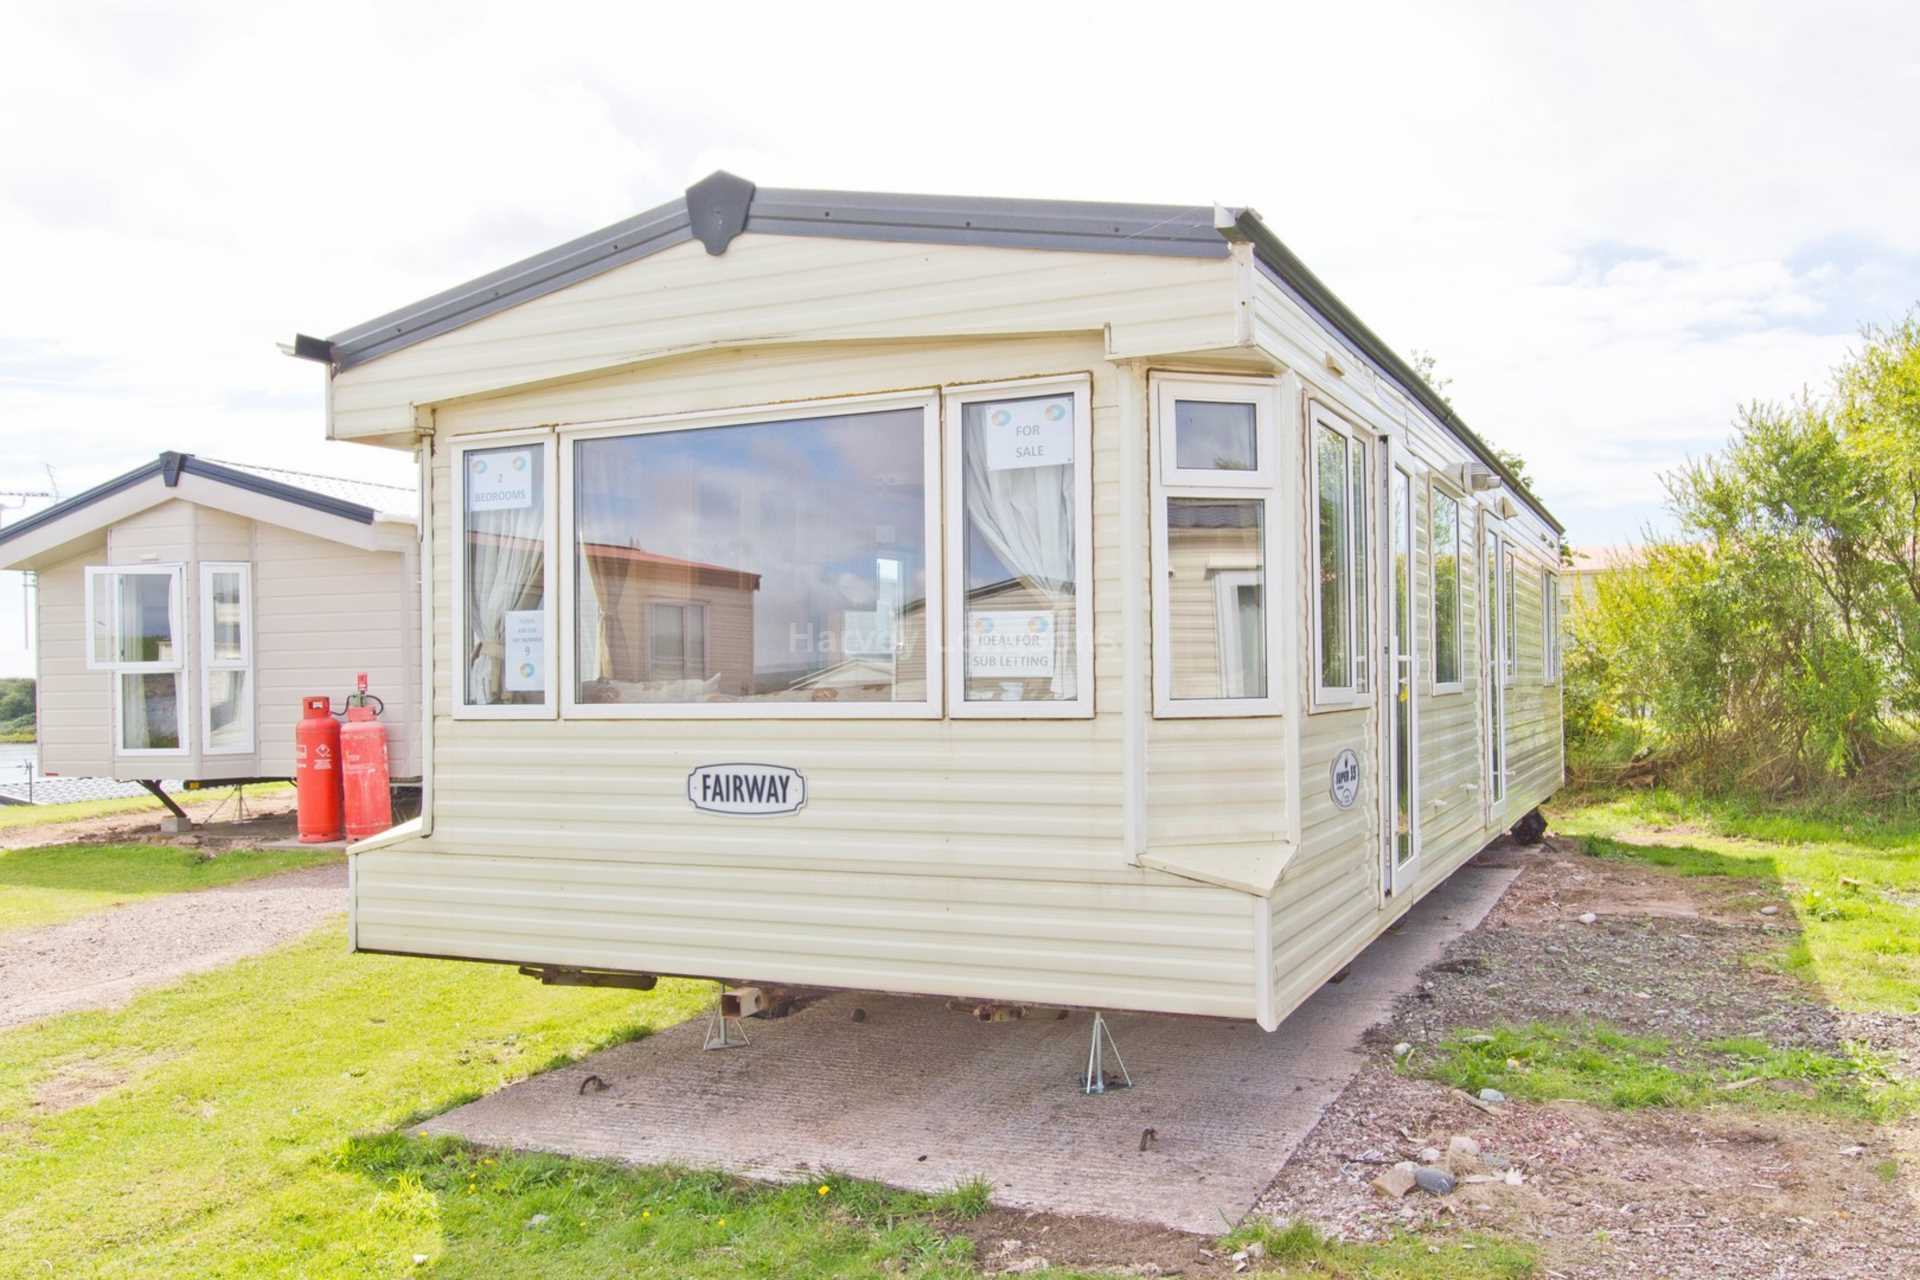 2 Bedroom Mobile Home Millom - Millom, Cumbria - **Open 52 Weeks****Gas Central Heating & Double Glazing**Holiday Home Ownership in Cumbria at the Lake District`s best kept secret!Port Haverigg is a true gem, a unique holiday park like no other. If you are planning to take your next ho - Millom, Cumbria